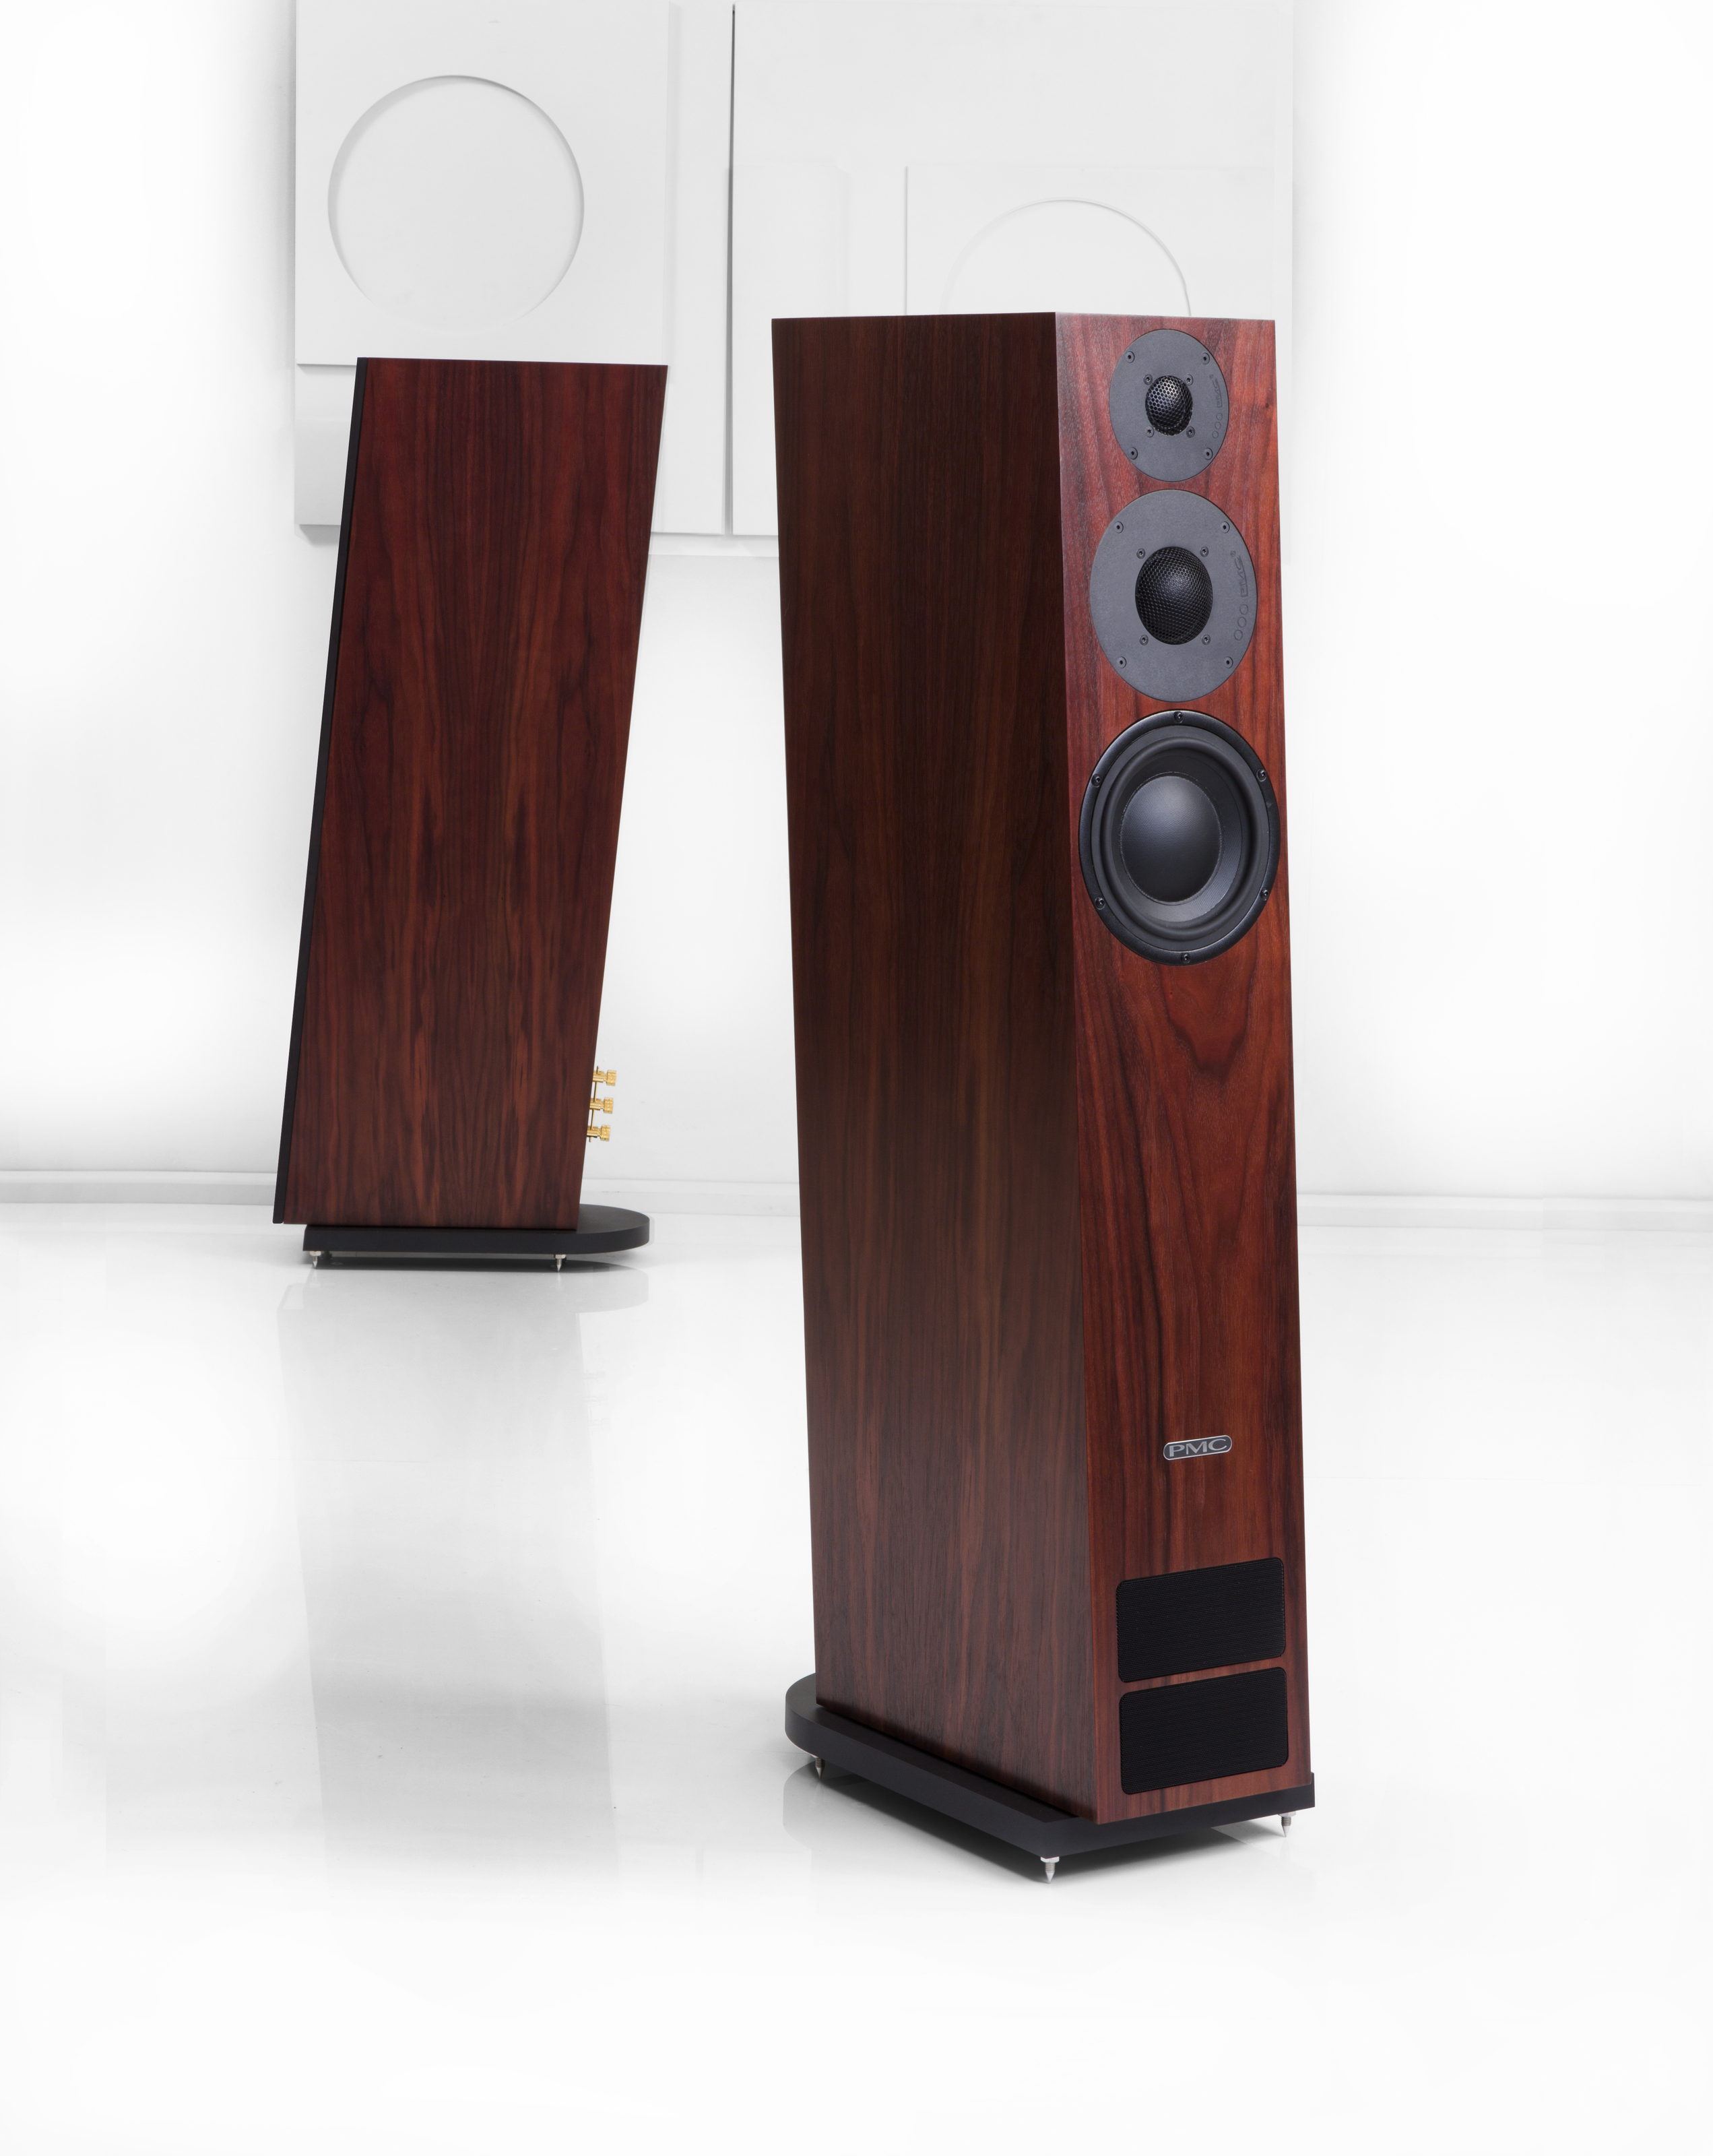 Picture of PMC Twenty 26 Speakers - brand new boxed